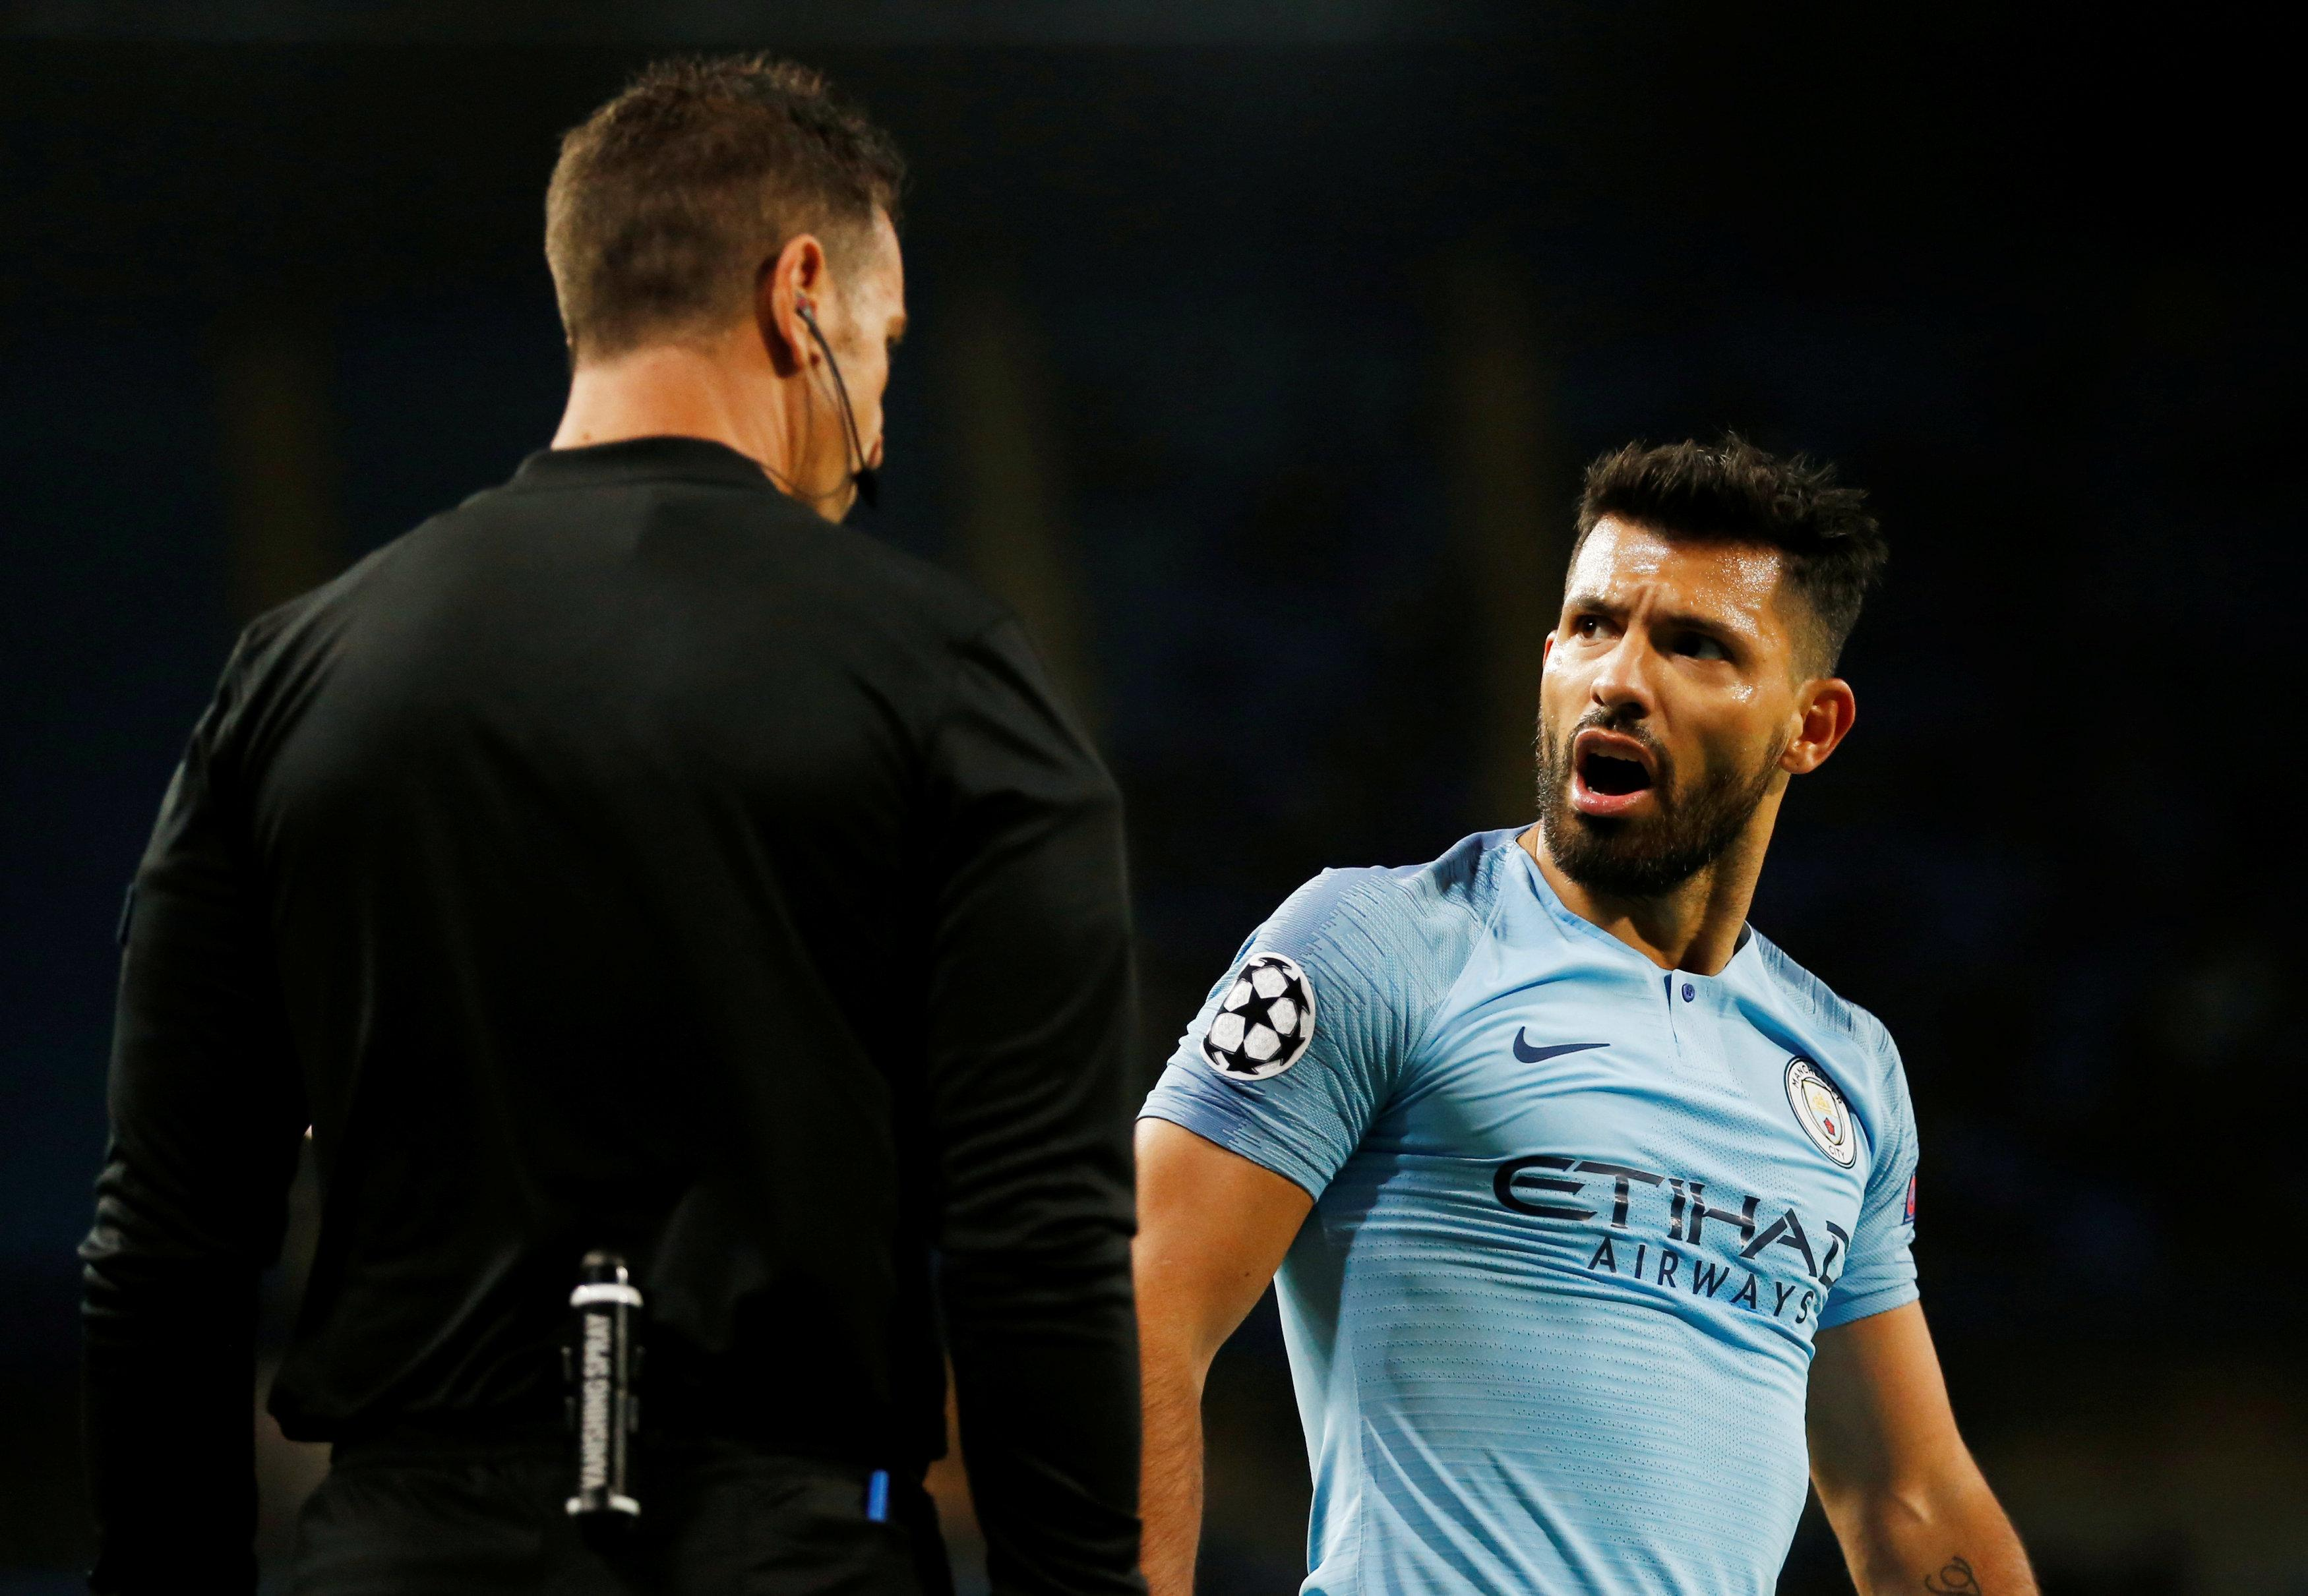 The likes of Sergio Aguero had a night to forget as City look to regroup for the weekend league clash with Cardiff